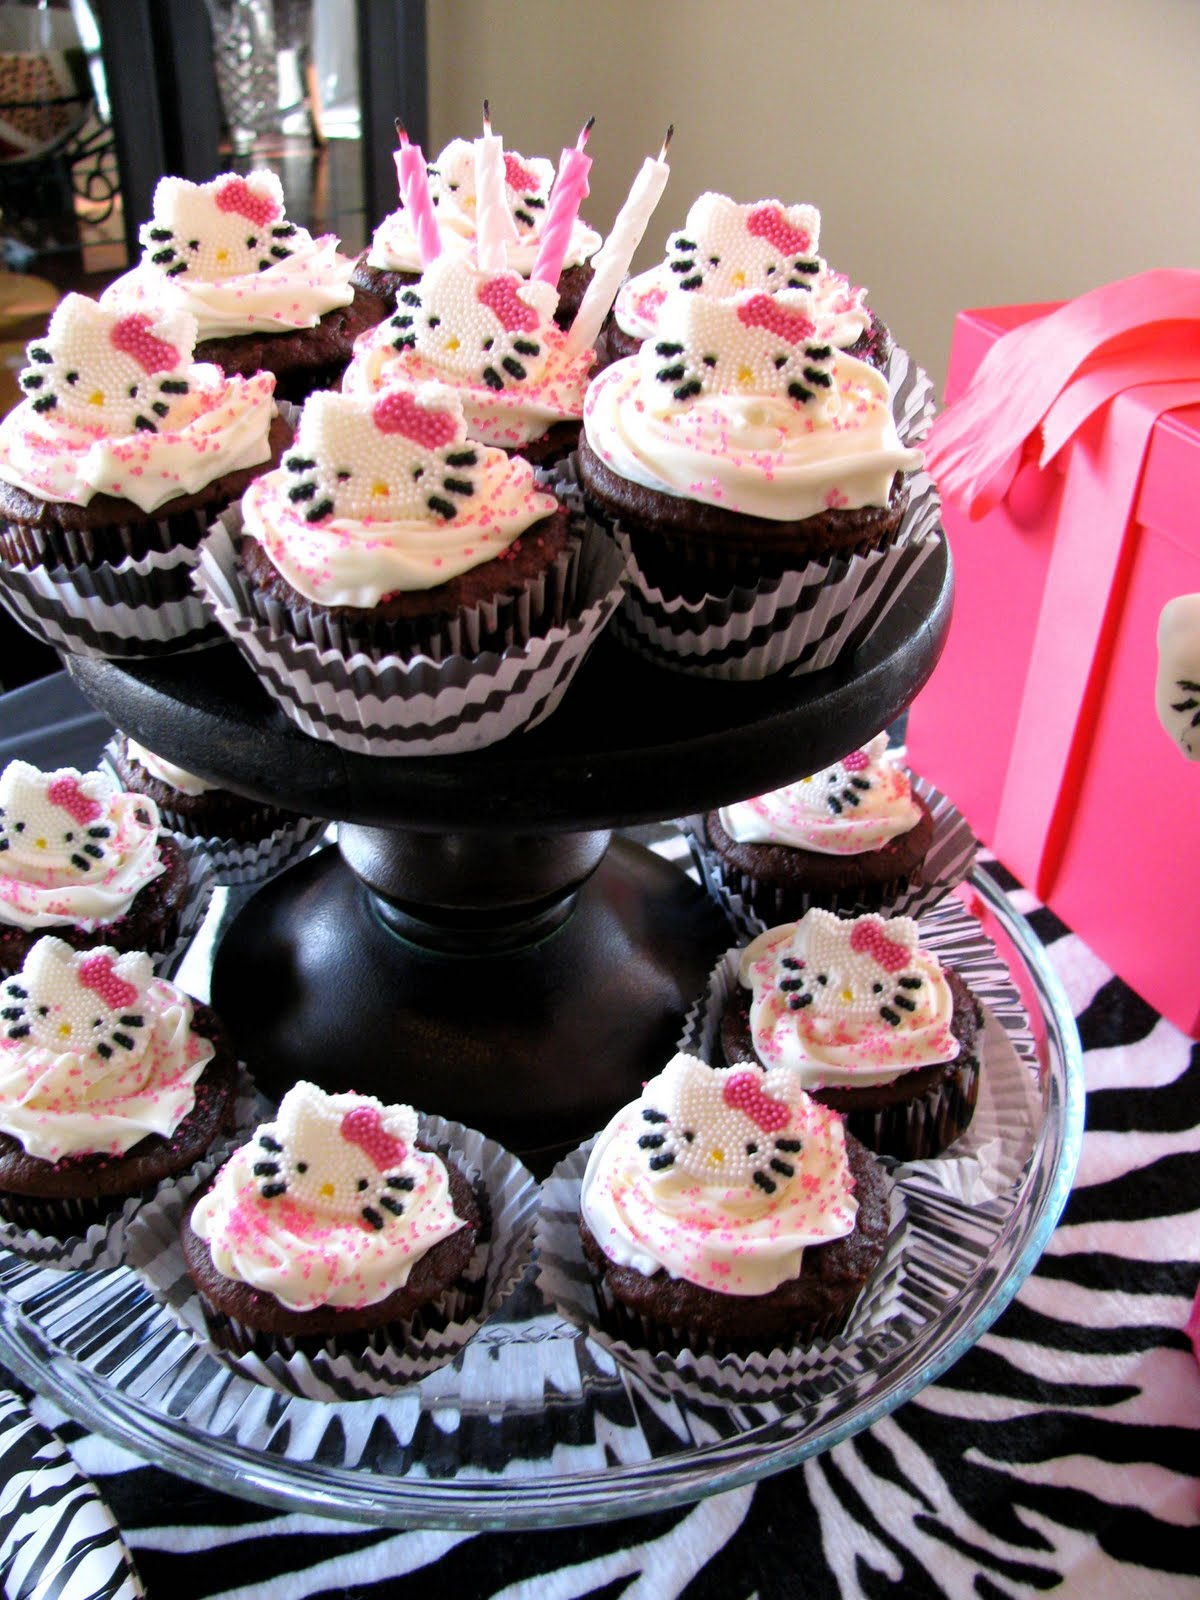 Our Creative Life: A Hello Kitty Birthday Party...not just for young ...